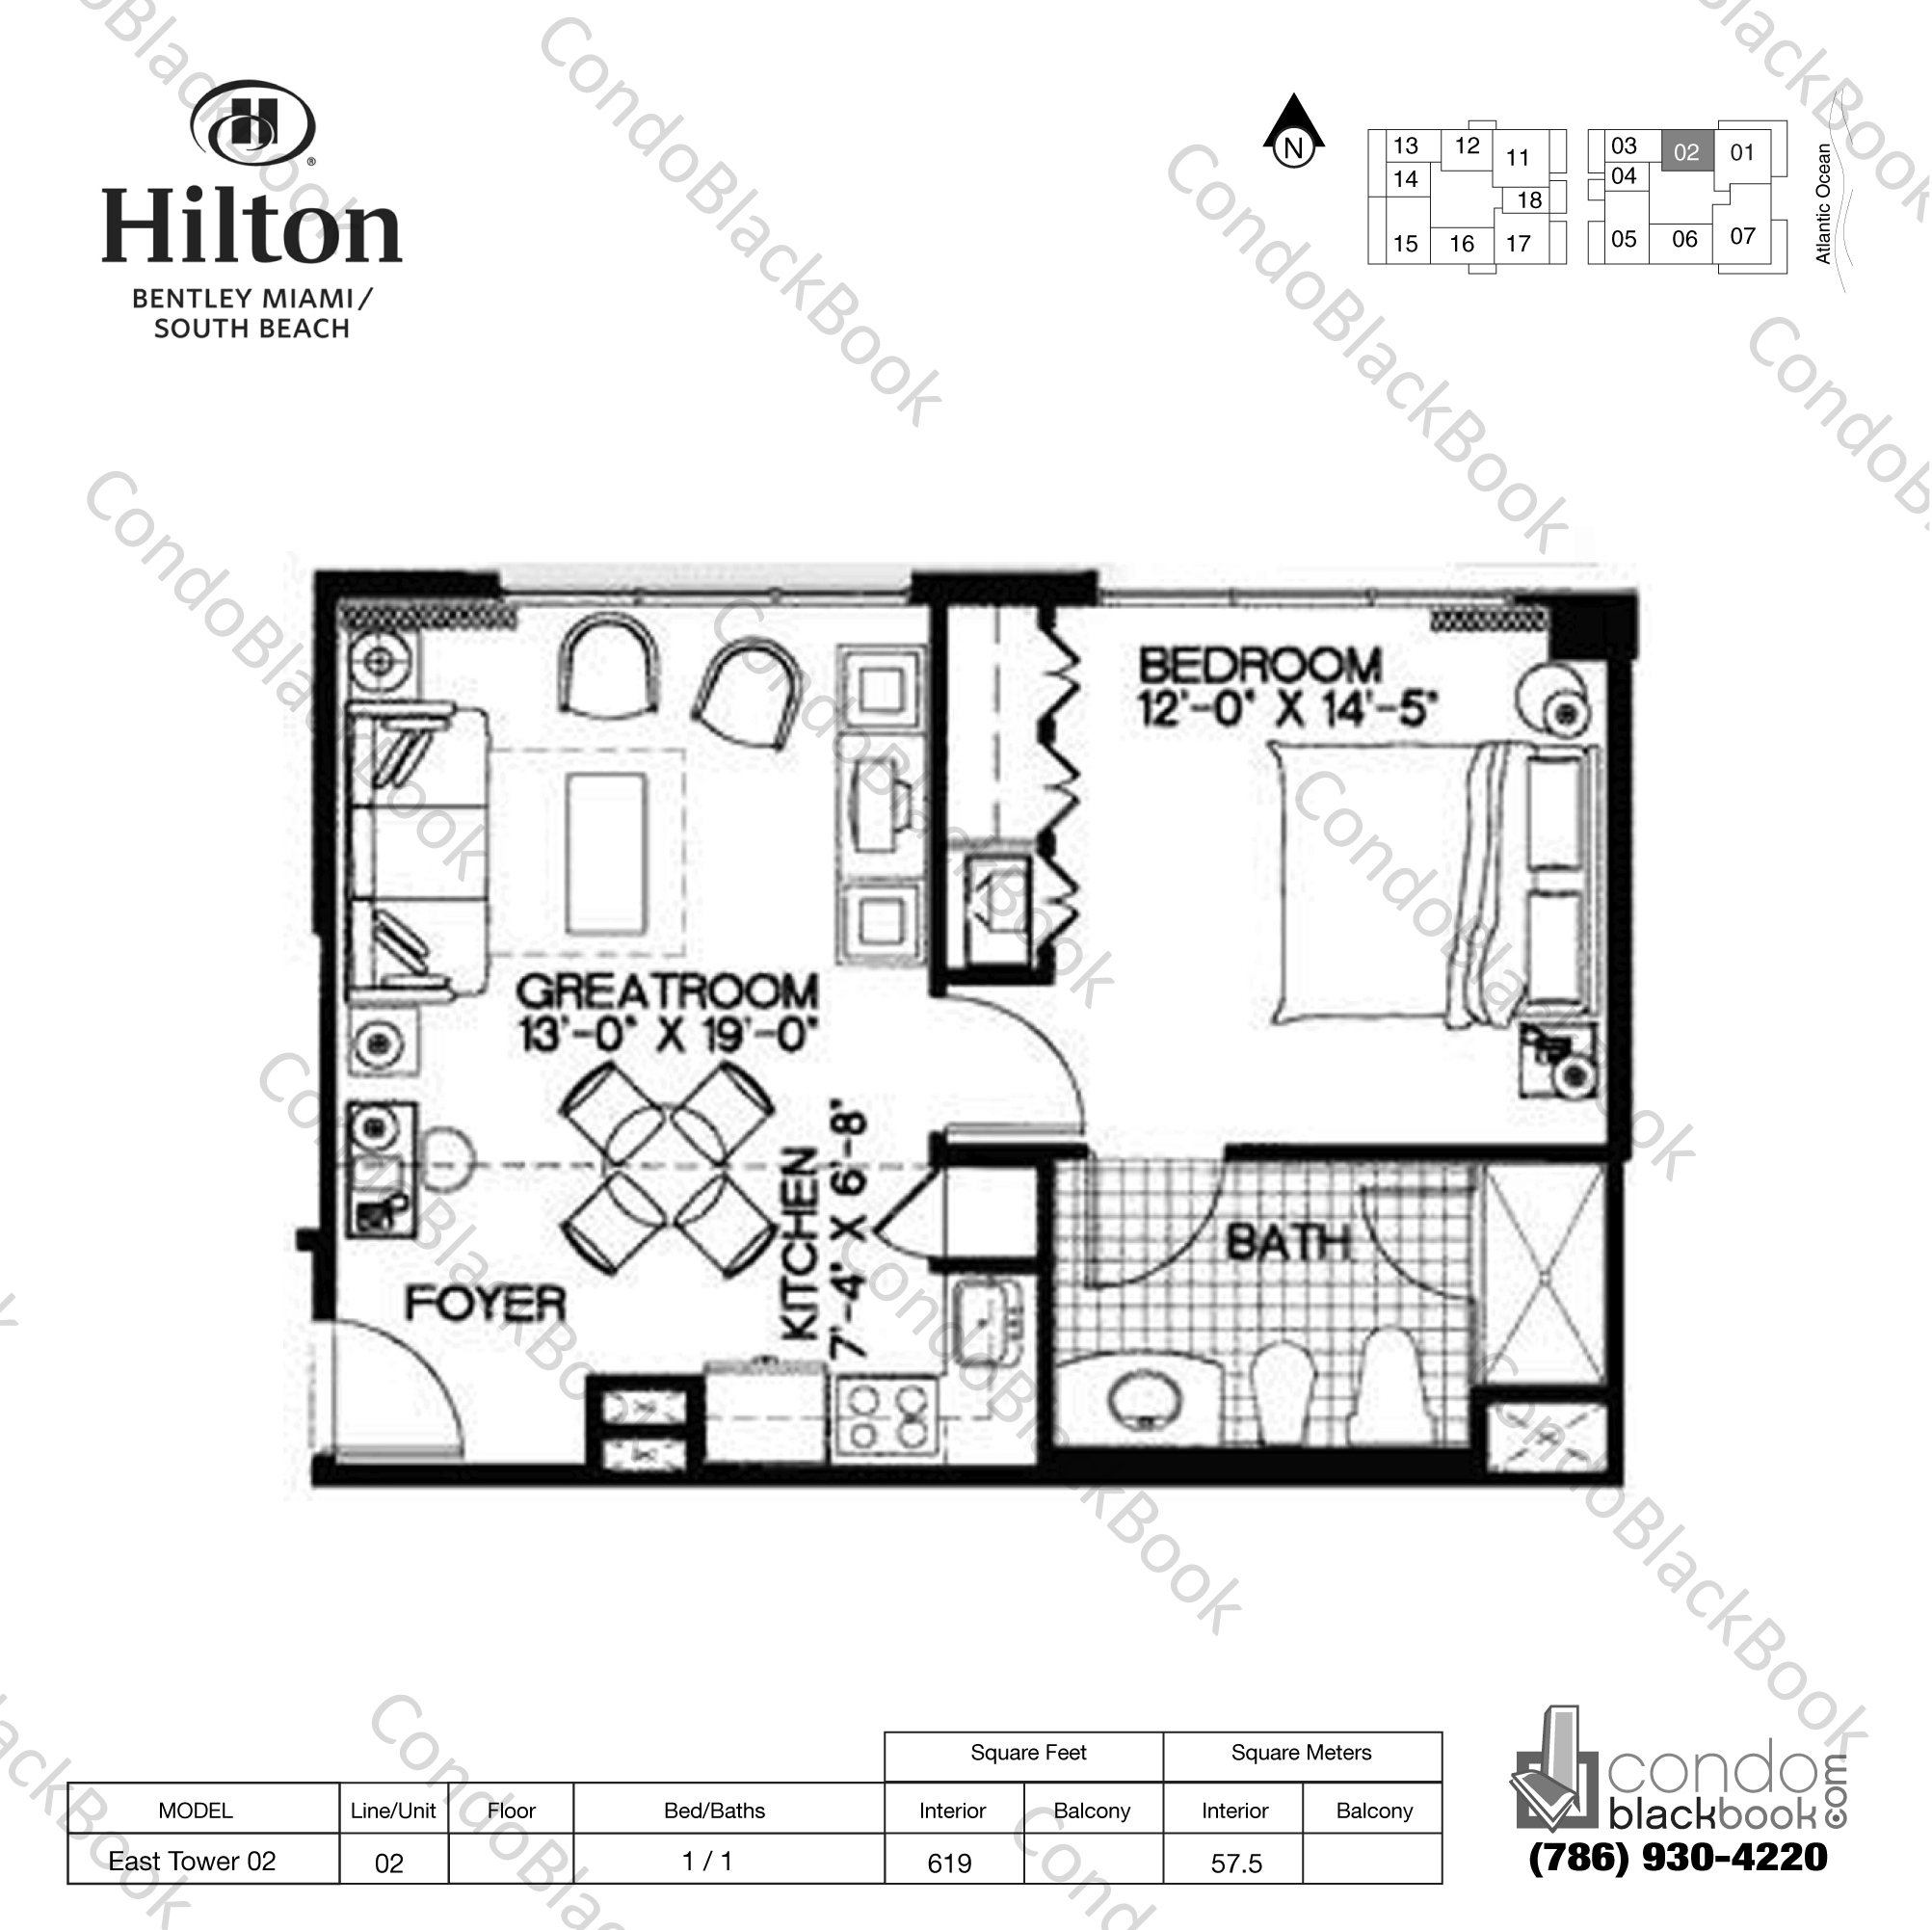 Floor plan for Bentley Beach Hilton South Beach Miami Beach, model East Tower 02, line 02, 1 / 1 bedrooms, 619 sq ft